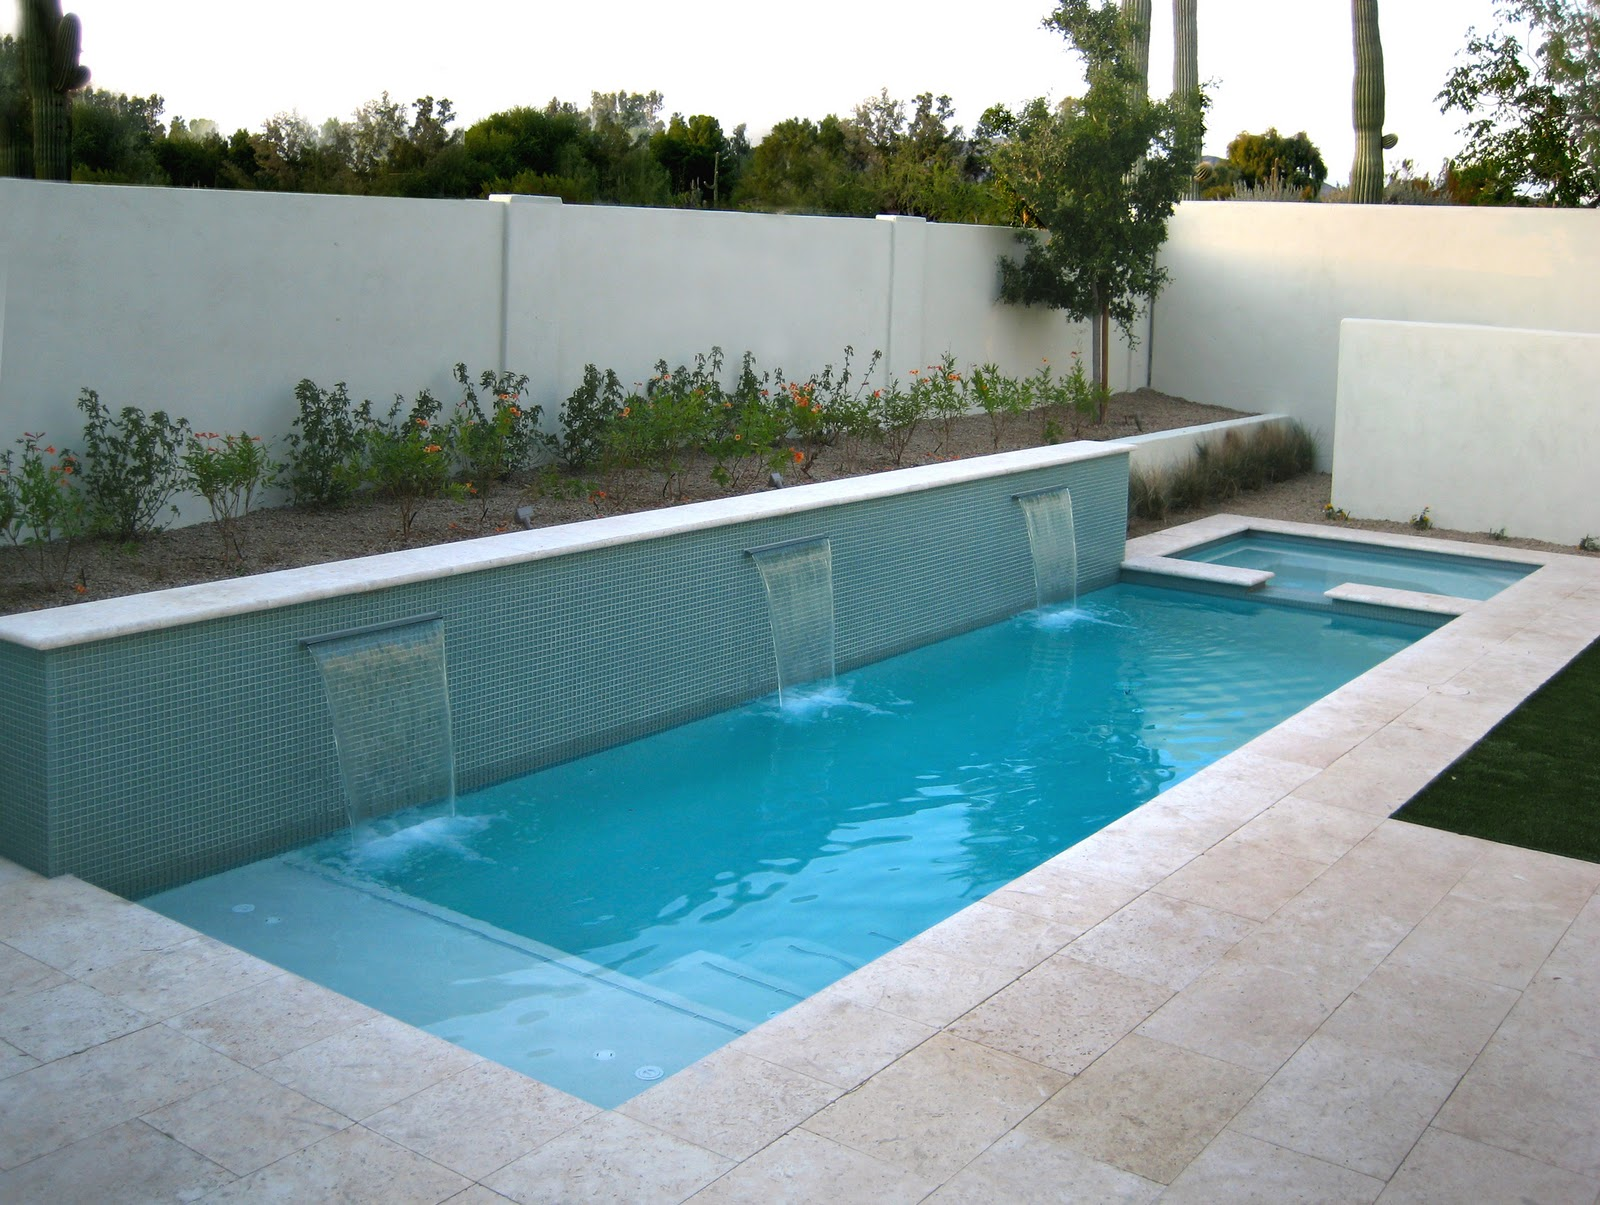 Swimming pools in small spaces alpentile glass tile for Small swimming pools